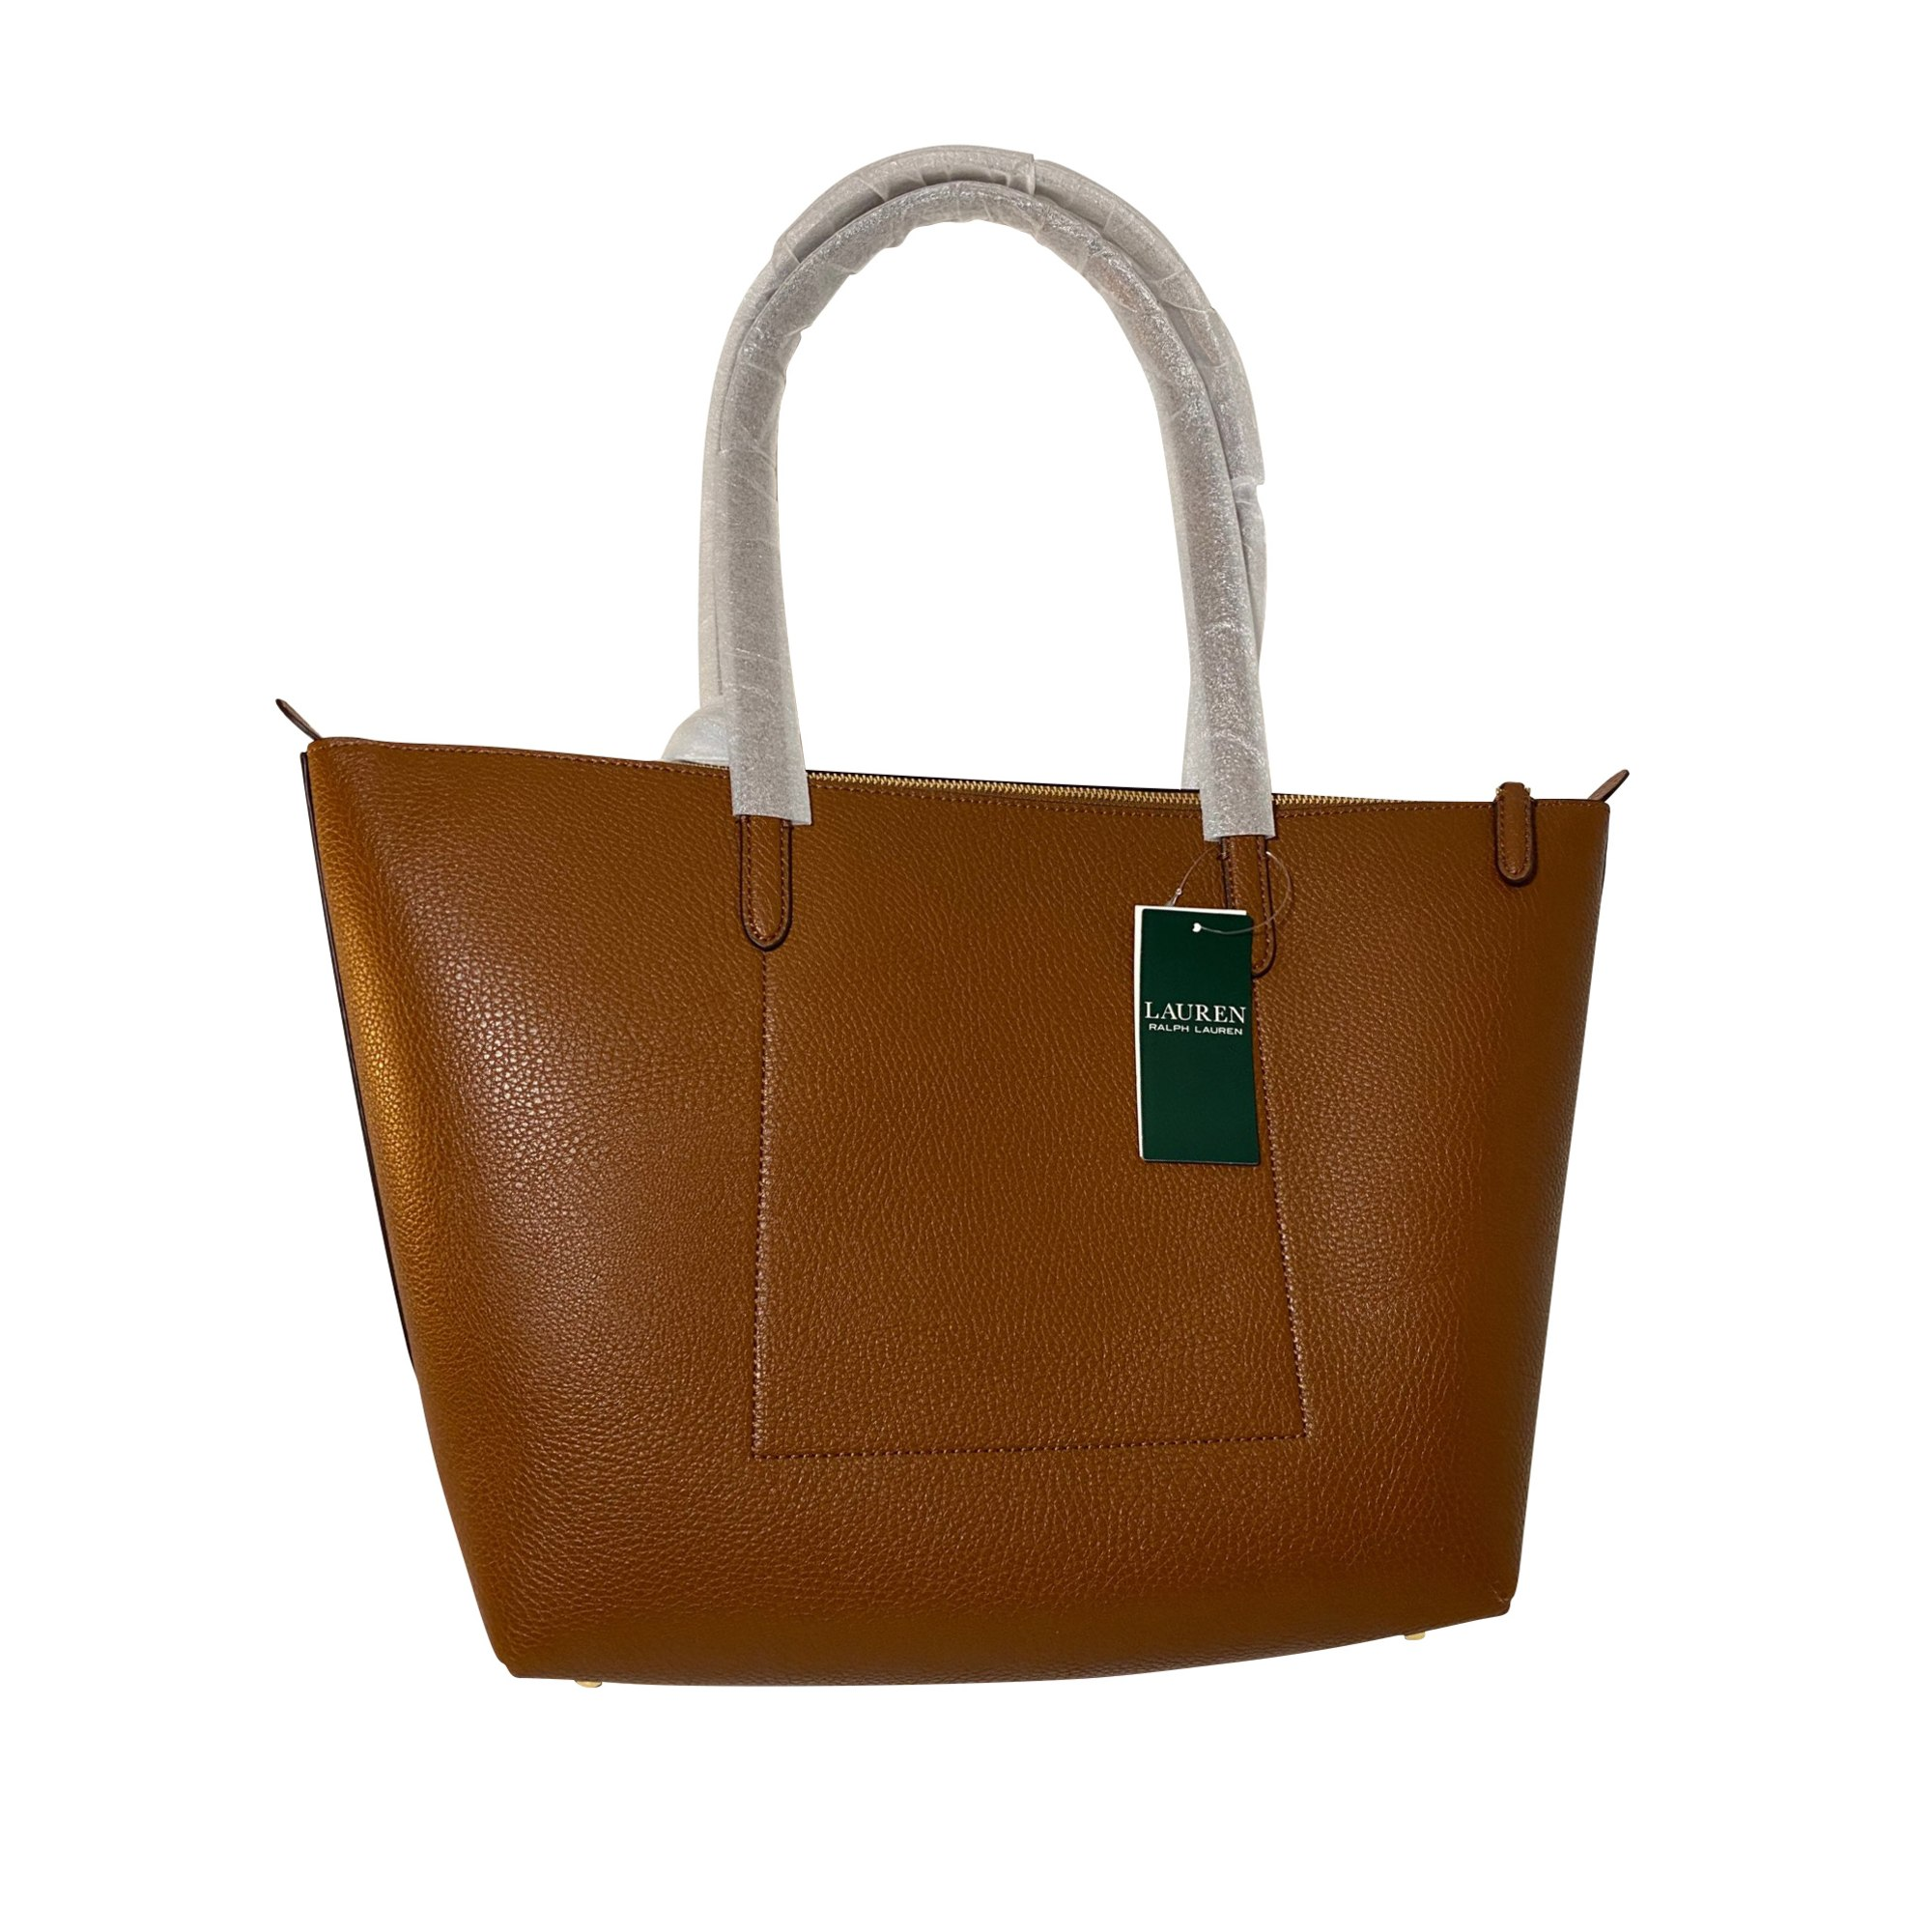 Sac à main en cuir RALPH LAUREN Marron